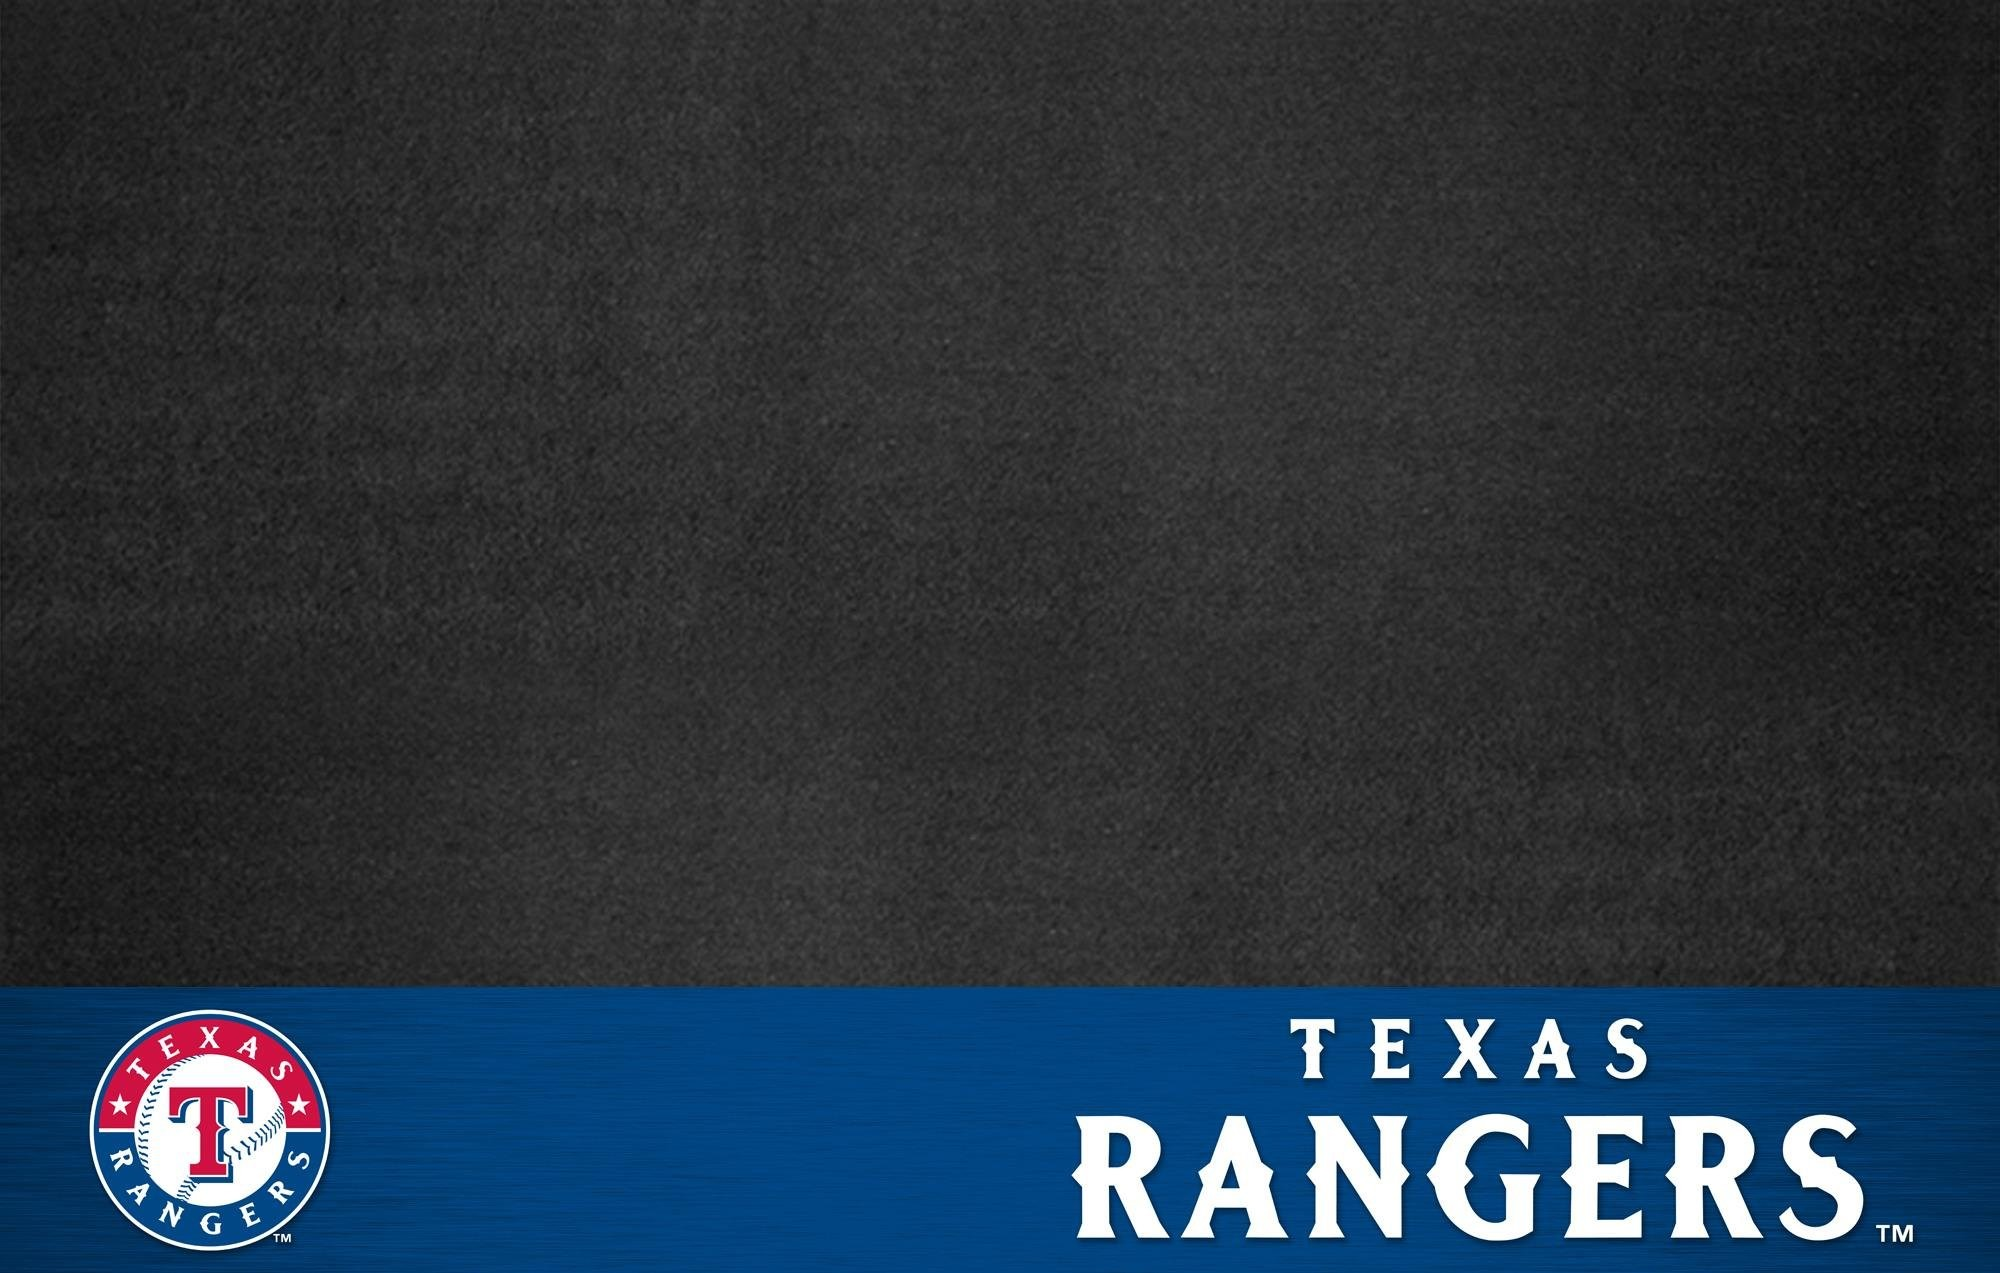 2000x1273 Texas Rangers Backgrounds Group 1024×768 Texas Rangers Backgrounds (30  Wallpapers) | Adorable